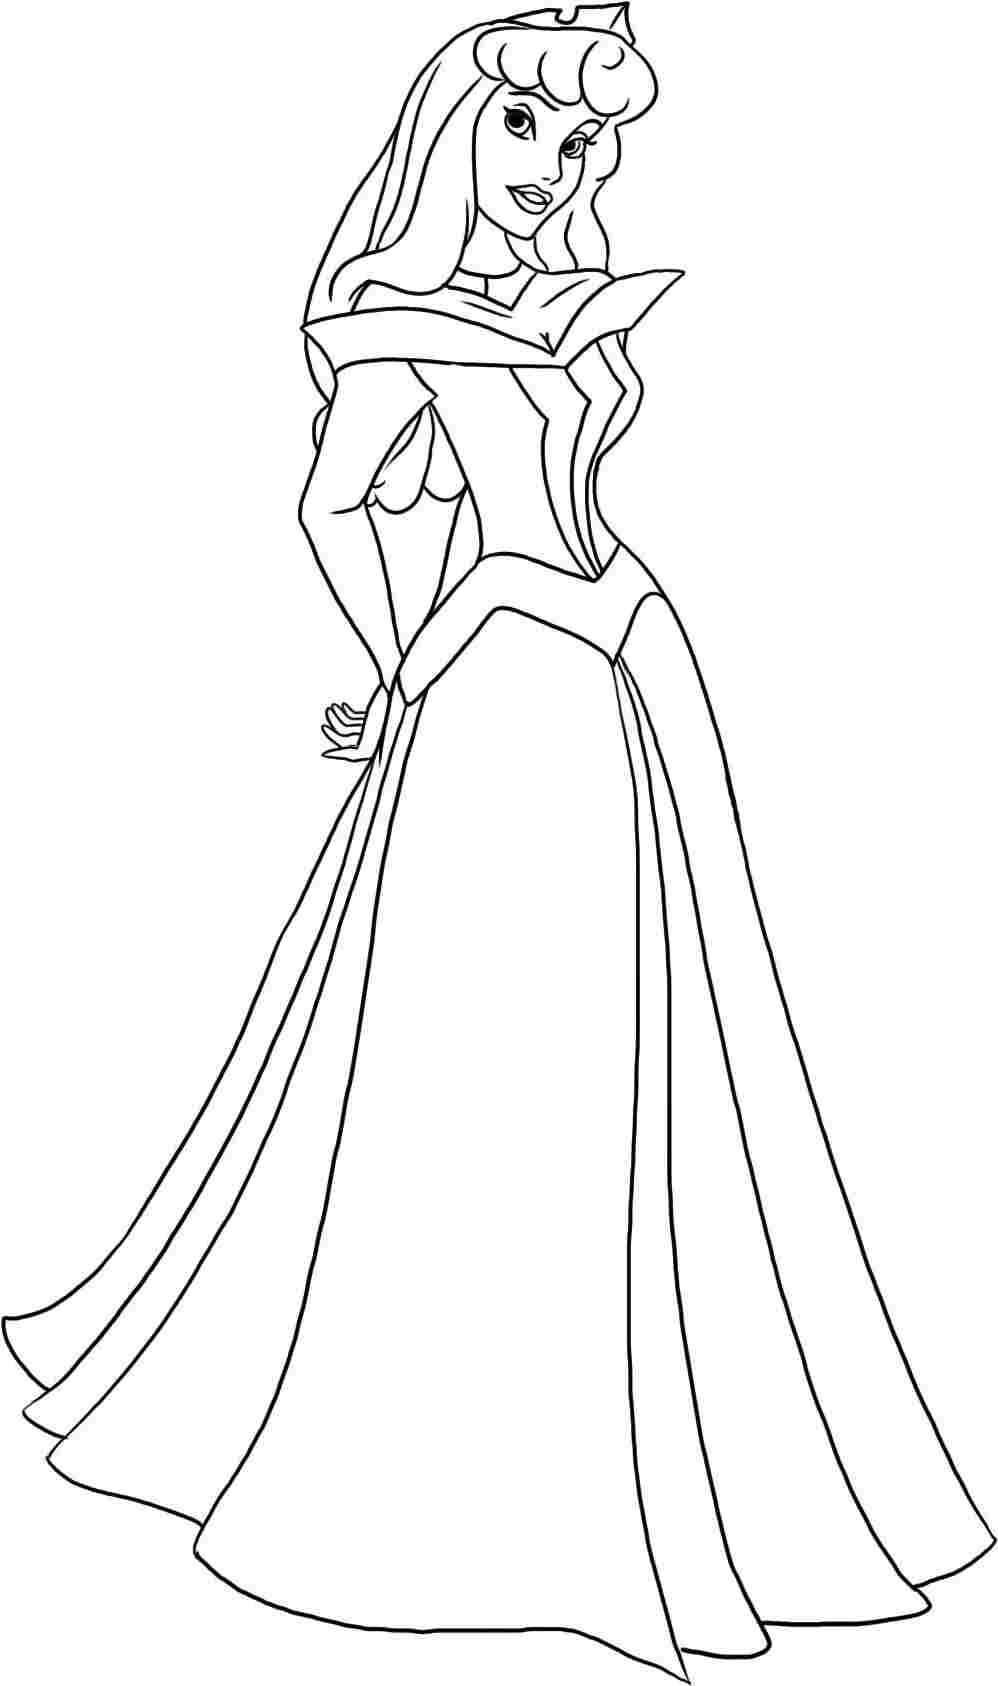 Printable Coloring Pages Of Aurora Az Coloring Pages Coloring Pages For Your And